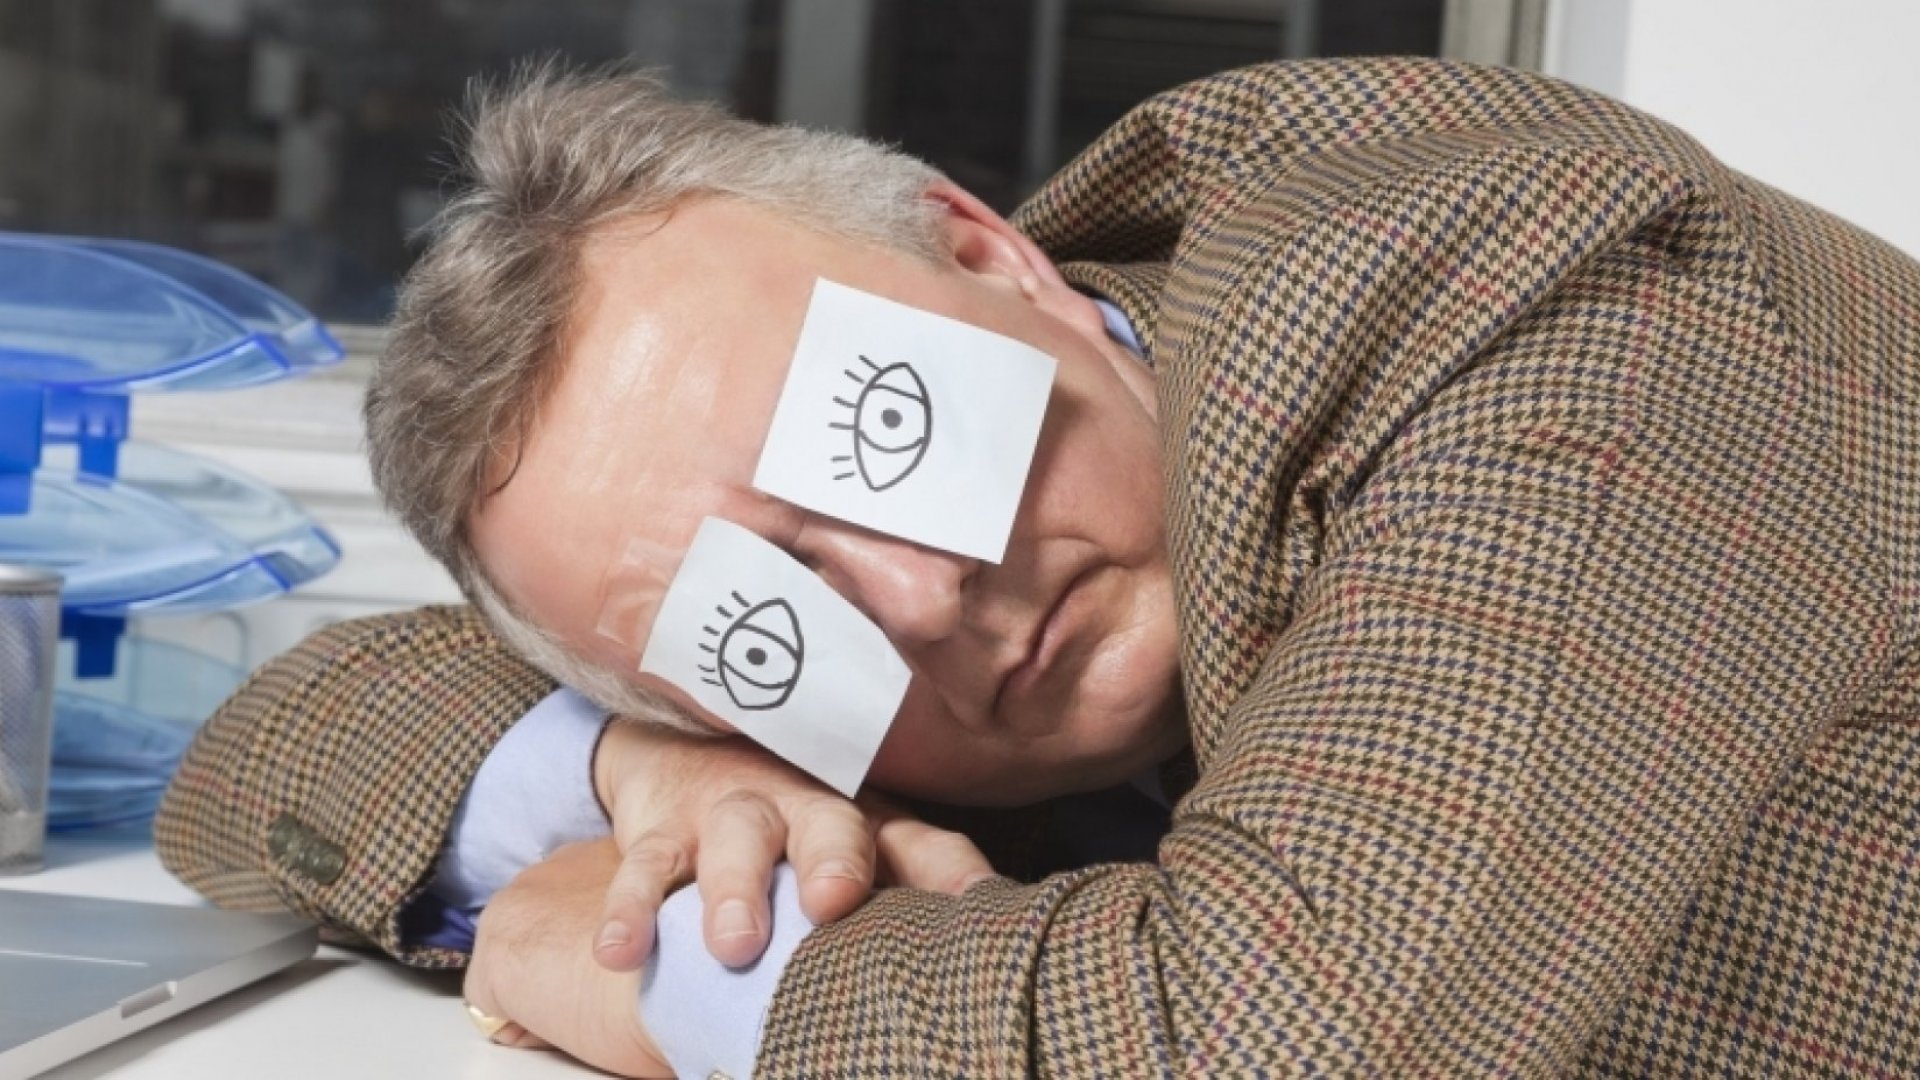 4 Problems Sleep Deprivation Can Cause